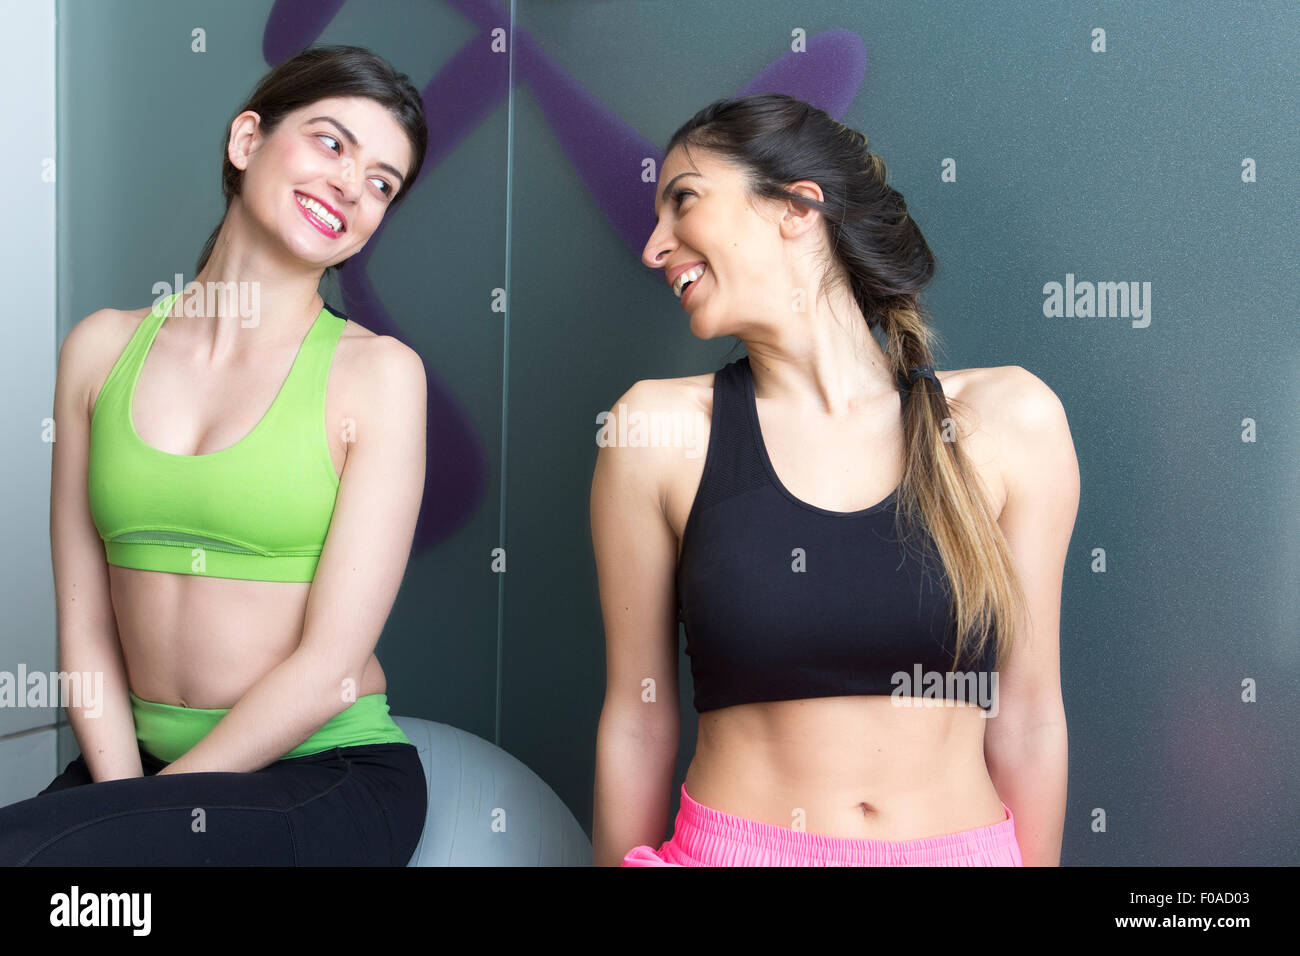 Two young women looking at each other and smiling in gym Stock Photo